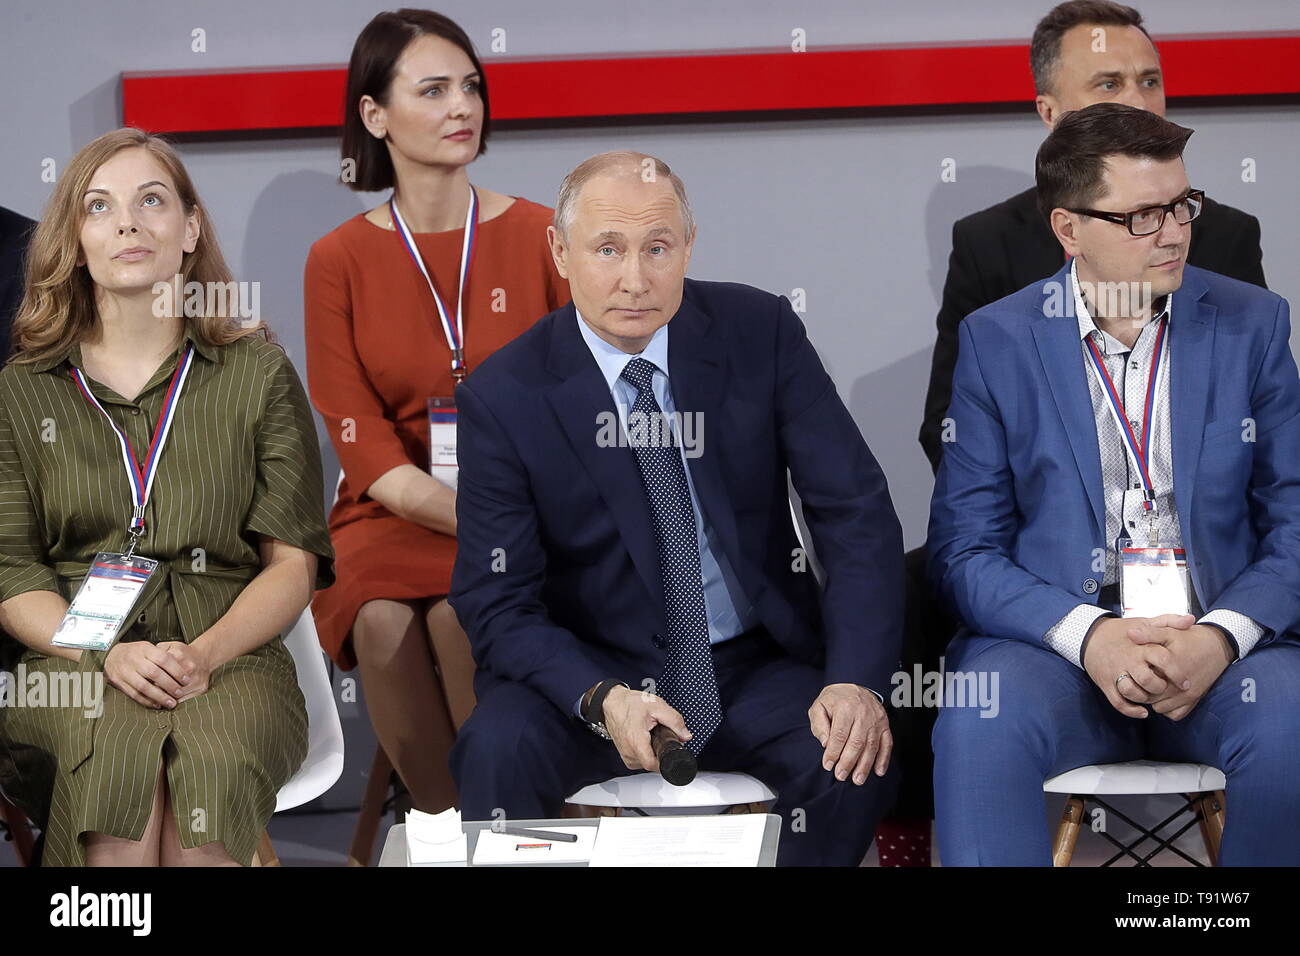 Sochi, Russia. 16th May, 2019. SOCHI, RUSSIA - MAY 16, 2019: Russia's President Vladimir Putin (C) attends the plenary meeting at the Independent Local and Regional Media Forum held by the All-Russian People's Front. Mikhail Metzel/TASS Credit: ITAR-TASS News Agency/Alamy Live News - Stock Image